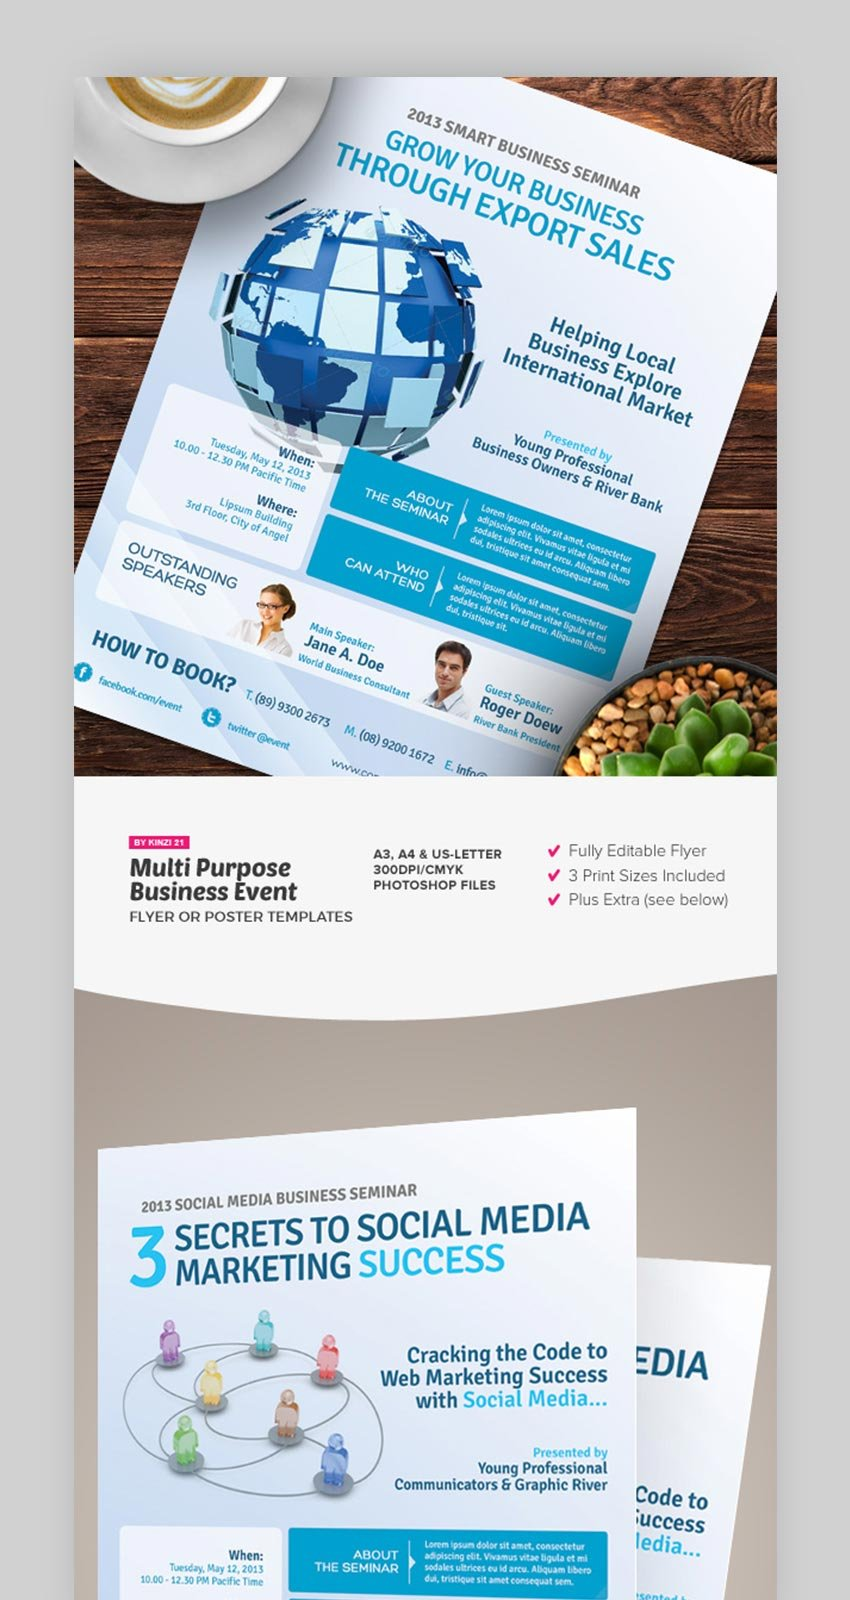 Multi Purpose Business Event Flyer or Poster